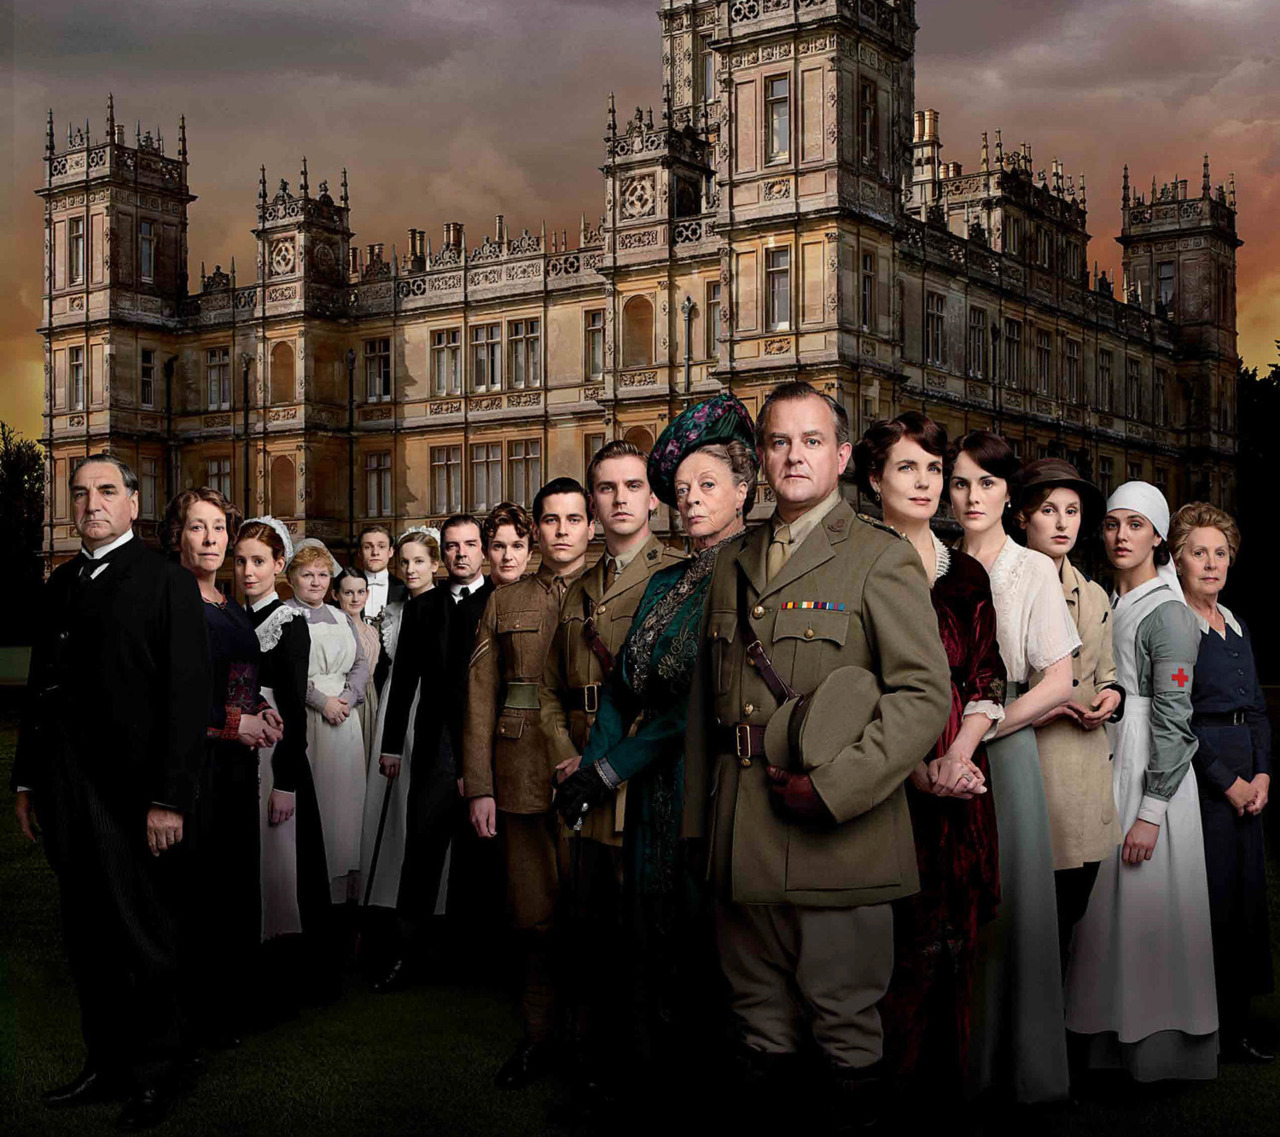 fashionablethings.com_wp-content_uploads_2012_01_Downton_abbey_Season_2